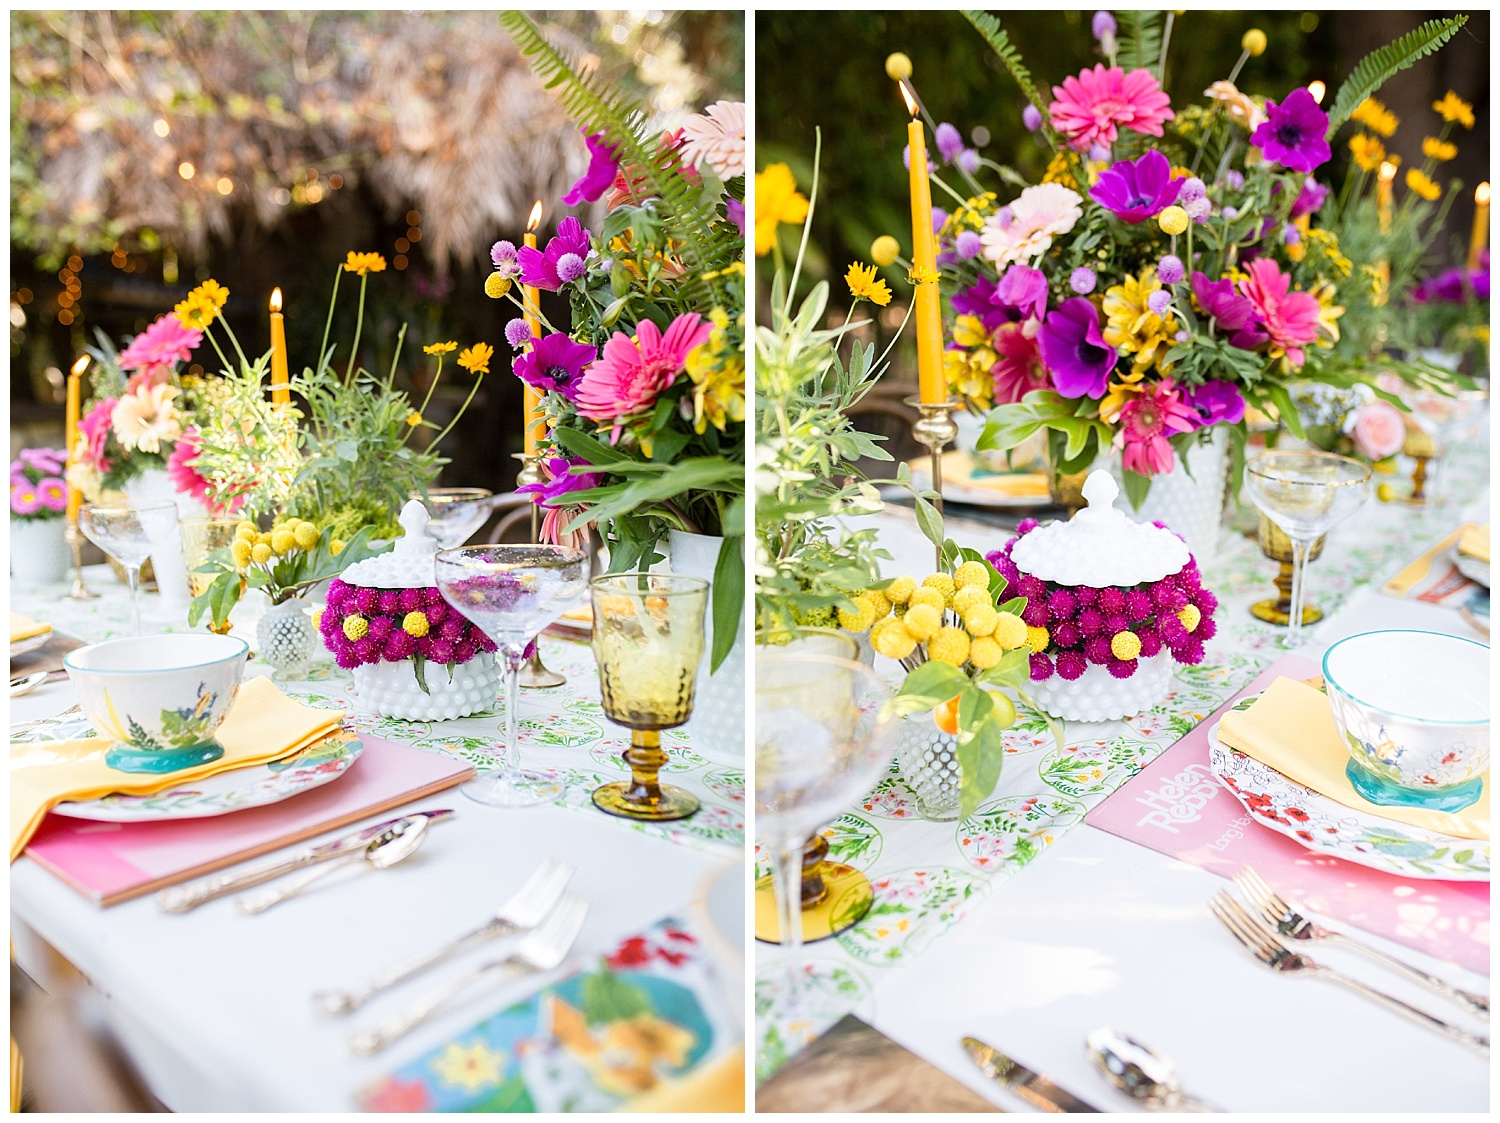 Colorful-table-setting-summer-of-love-the-holly-farm.jpg